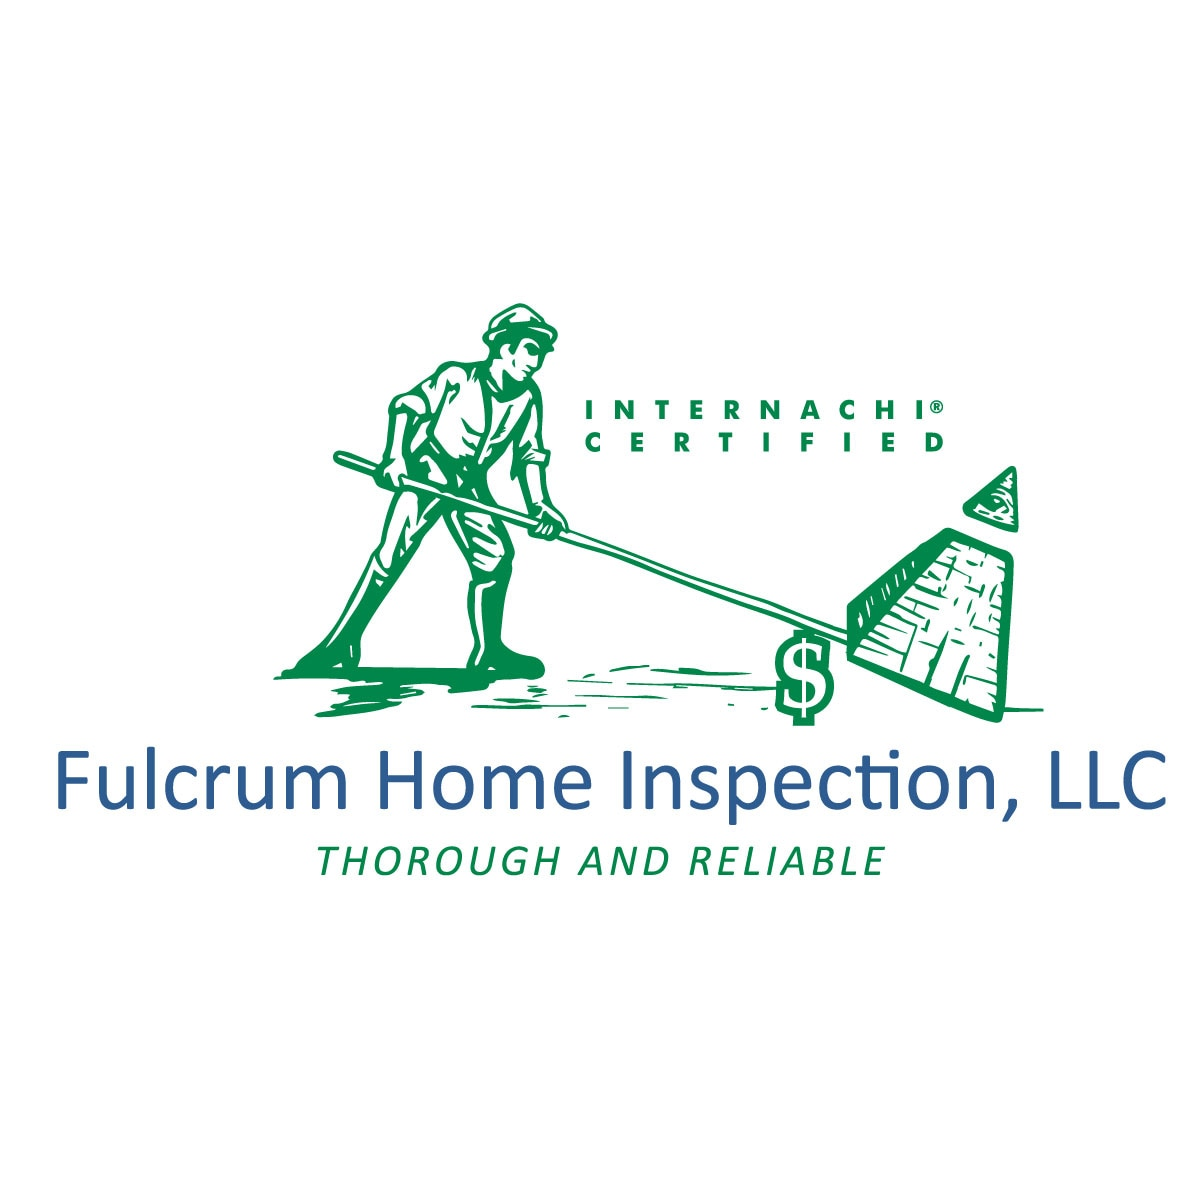 Fulcrum Home Inspection, LLC